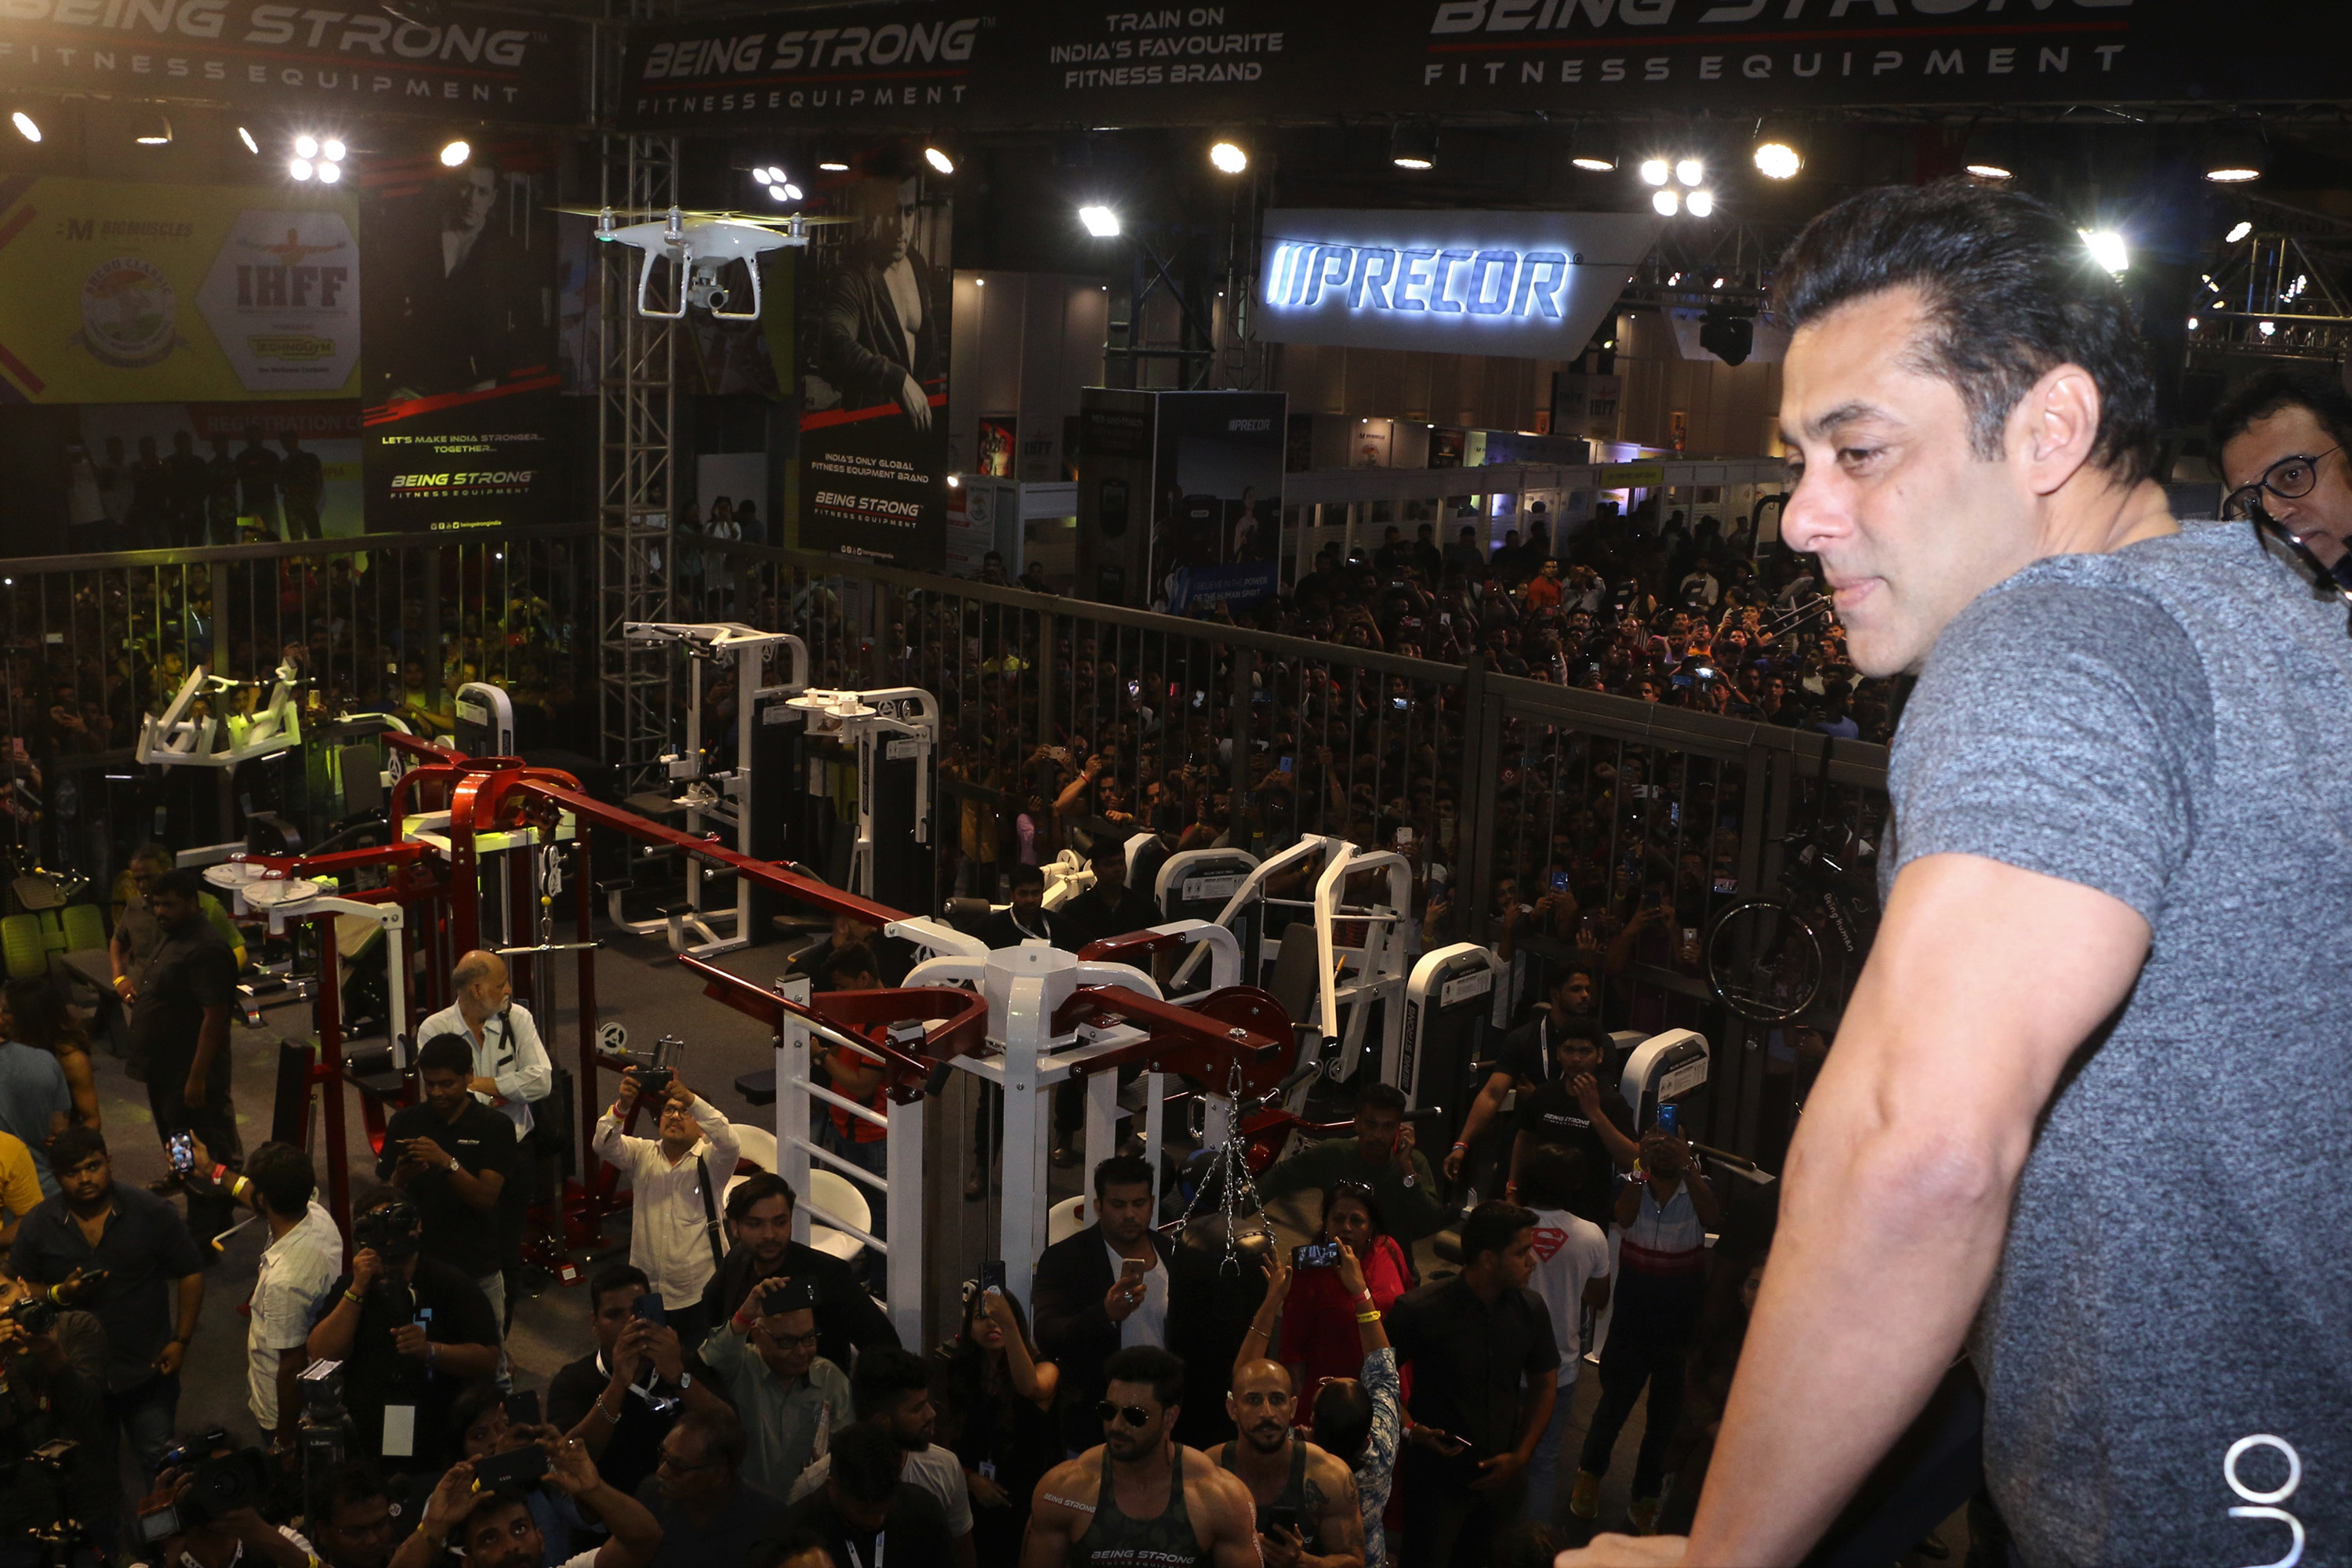 Being Strong's Equipment to be showcased at Fitness Exhibition in Mumbai